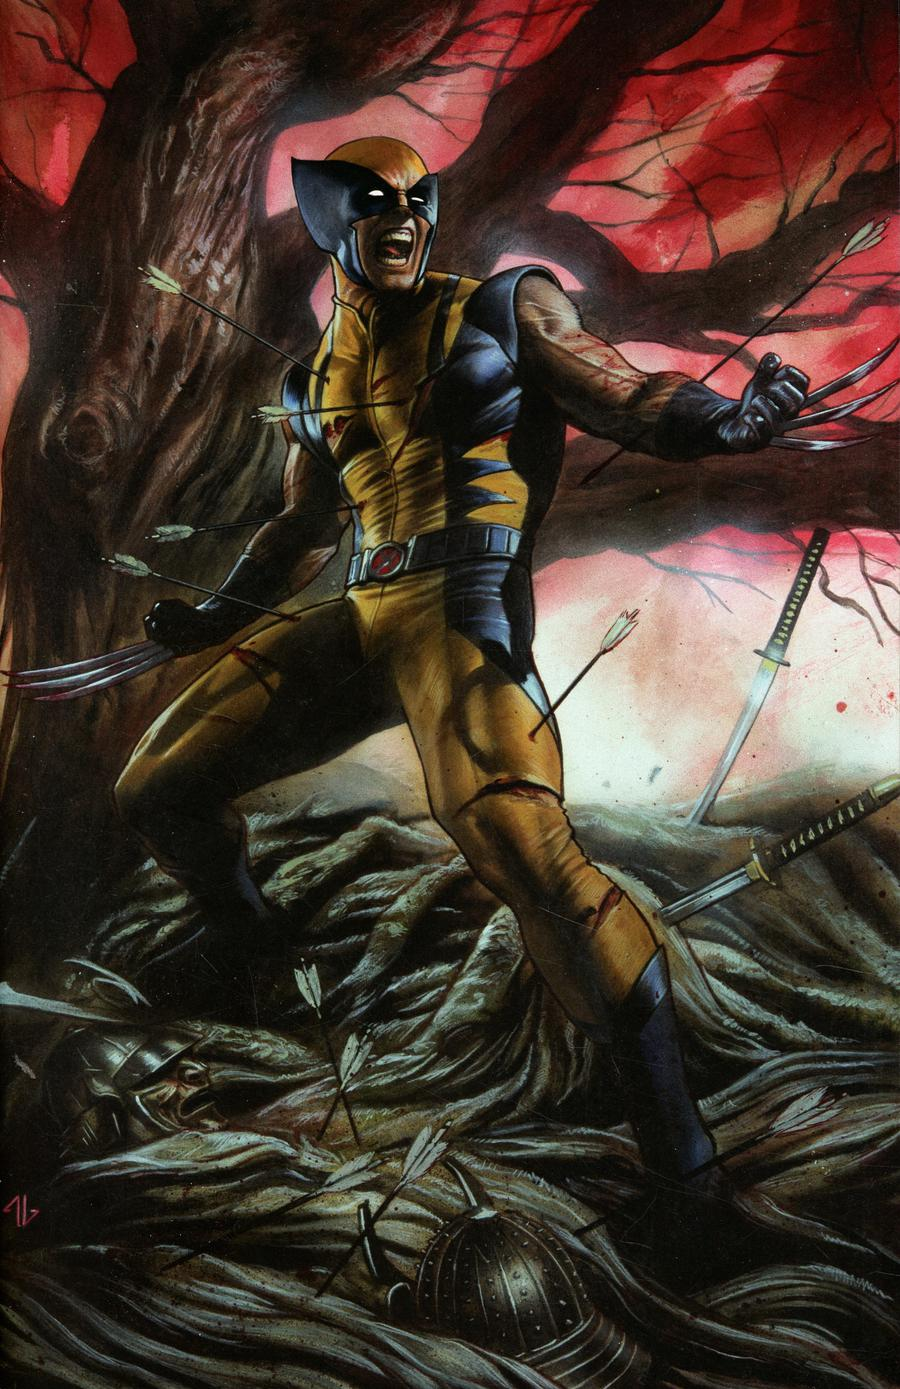 Return Of Wolverine #1 Cover Z-J Adi Granov Convention Exclusive Virgin Variant Cover